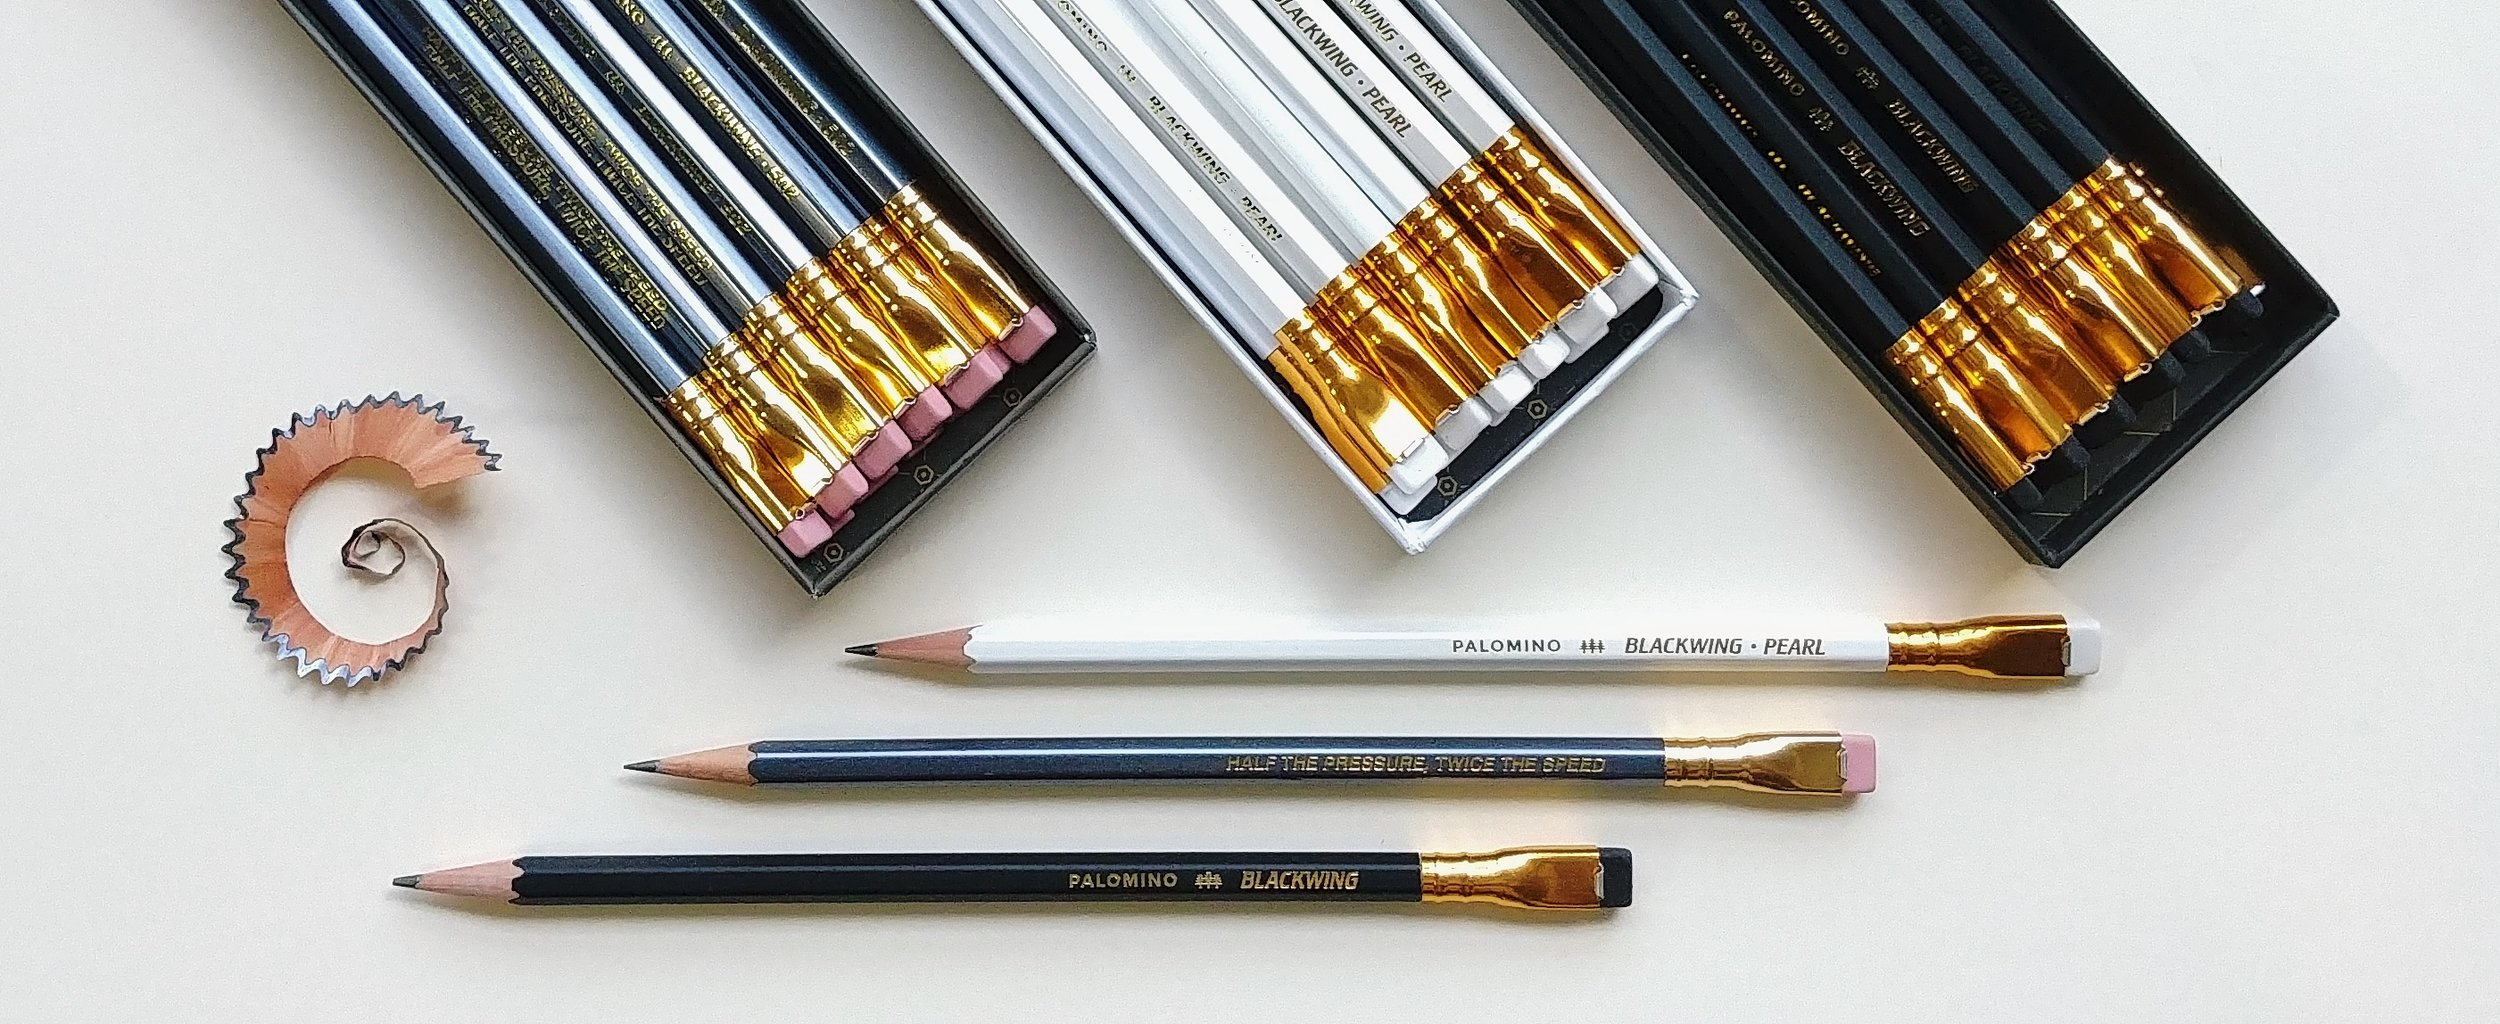 Blackwing pencils were the historical choice for award-winning creators throughout the 20th century. When they were discontinued in the 1990s the scramble was on to grab the remaining stock, pushing the price of a single pencil to as high as $40. Happily for us, the revived brand is much more accessible. It is with great pleasure that we welcome these iconic pencils to our shop.  August 9 2019